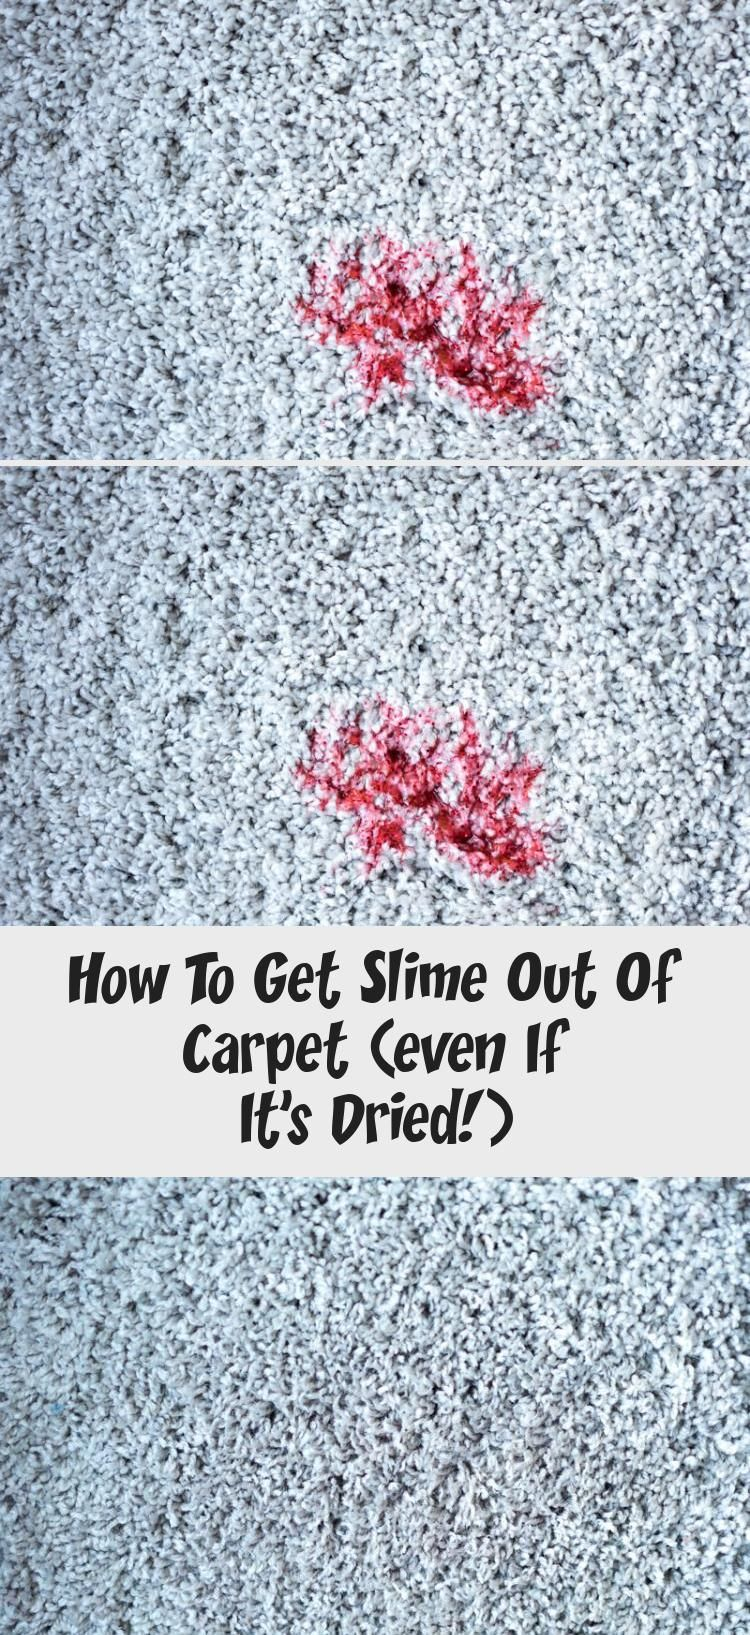 How To Get Slime Out Of Carpet Very Easy Cleaning Tip For How To Get Dried Slime Out Of Carpet It S Easy To Remove How To Clean Carpet Types Of Carpet